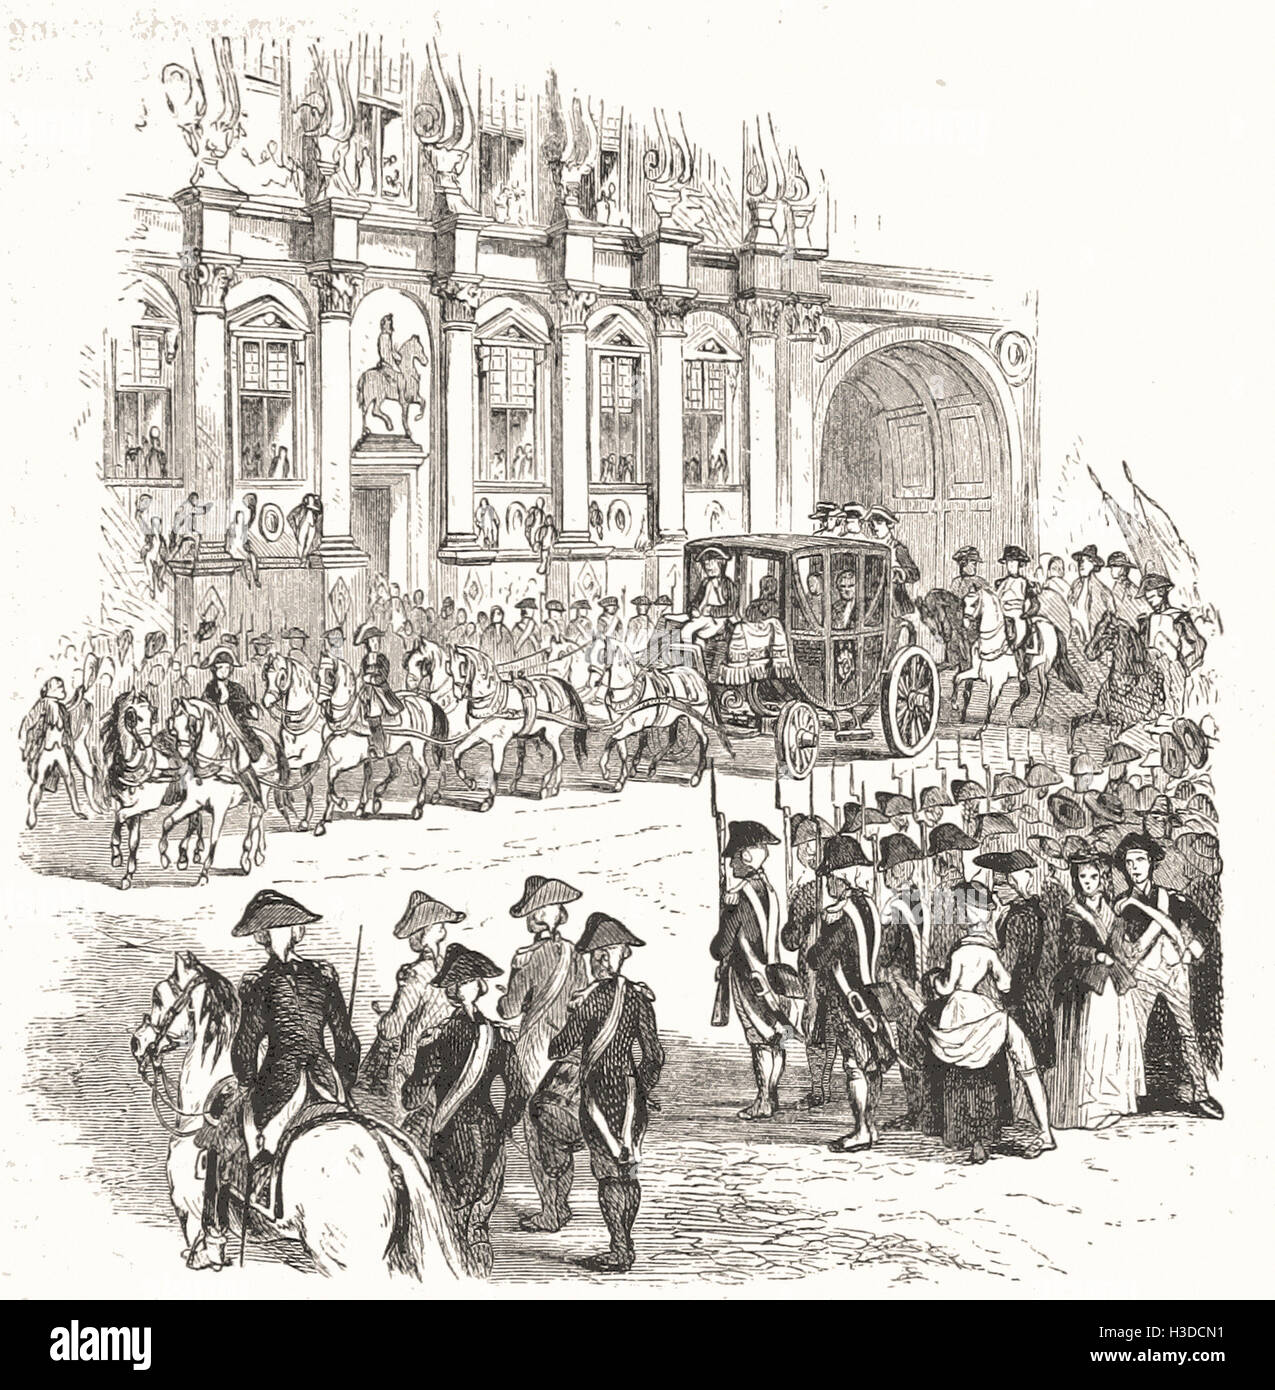 ARRIVAL OF THE KING AT THE HOTEL DE VILLE JULY 17, 1789. - Stock Image